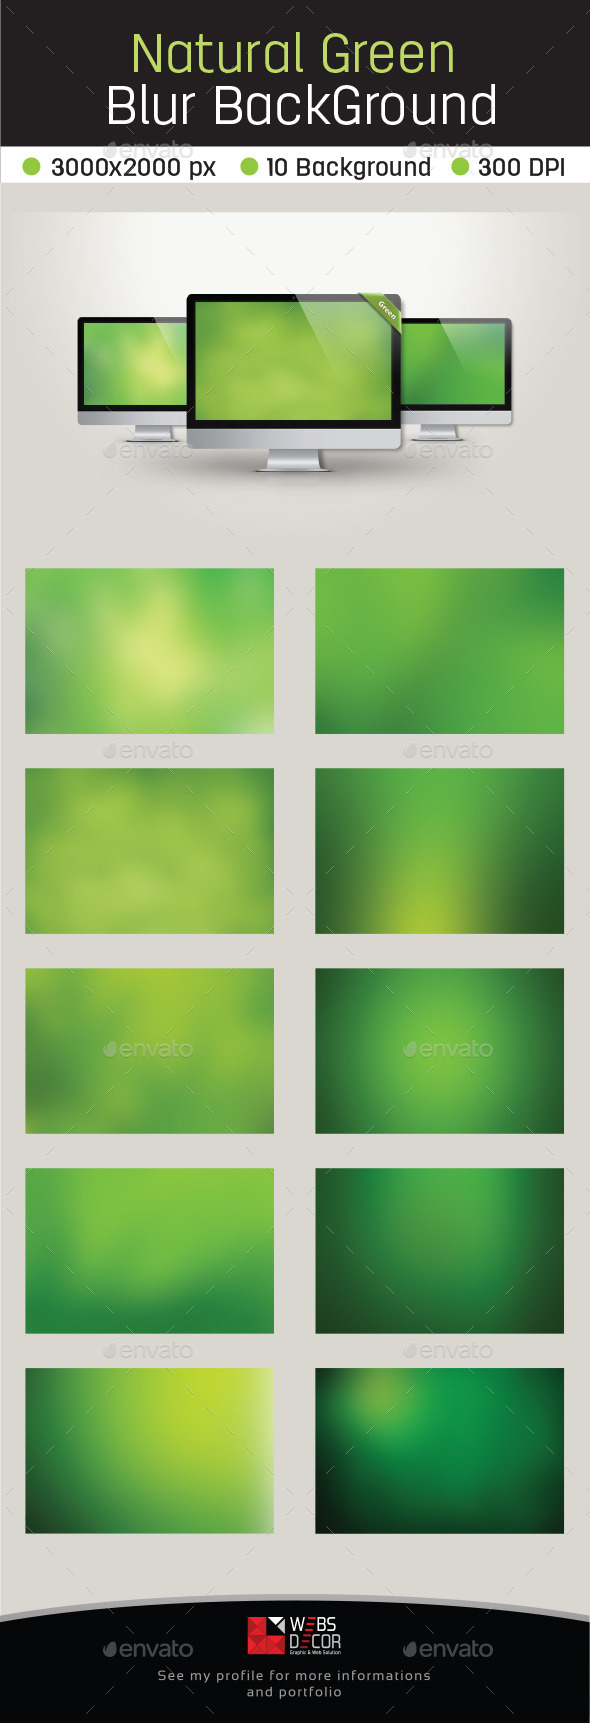 10 Natural Green Blur Background